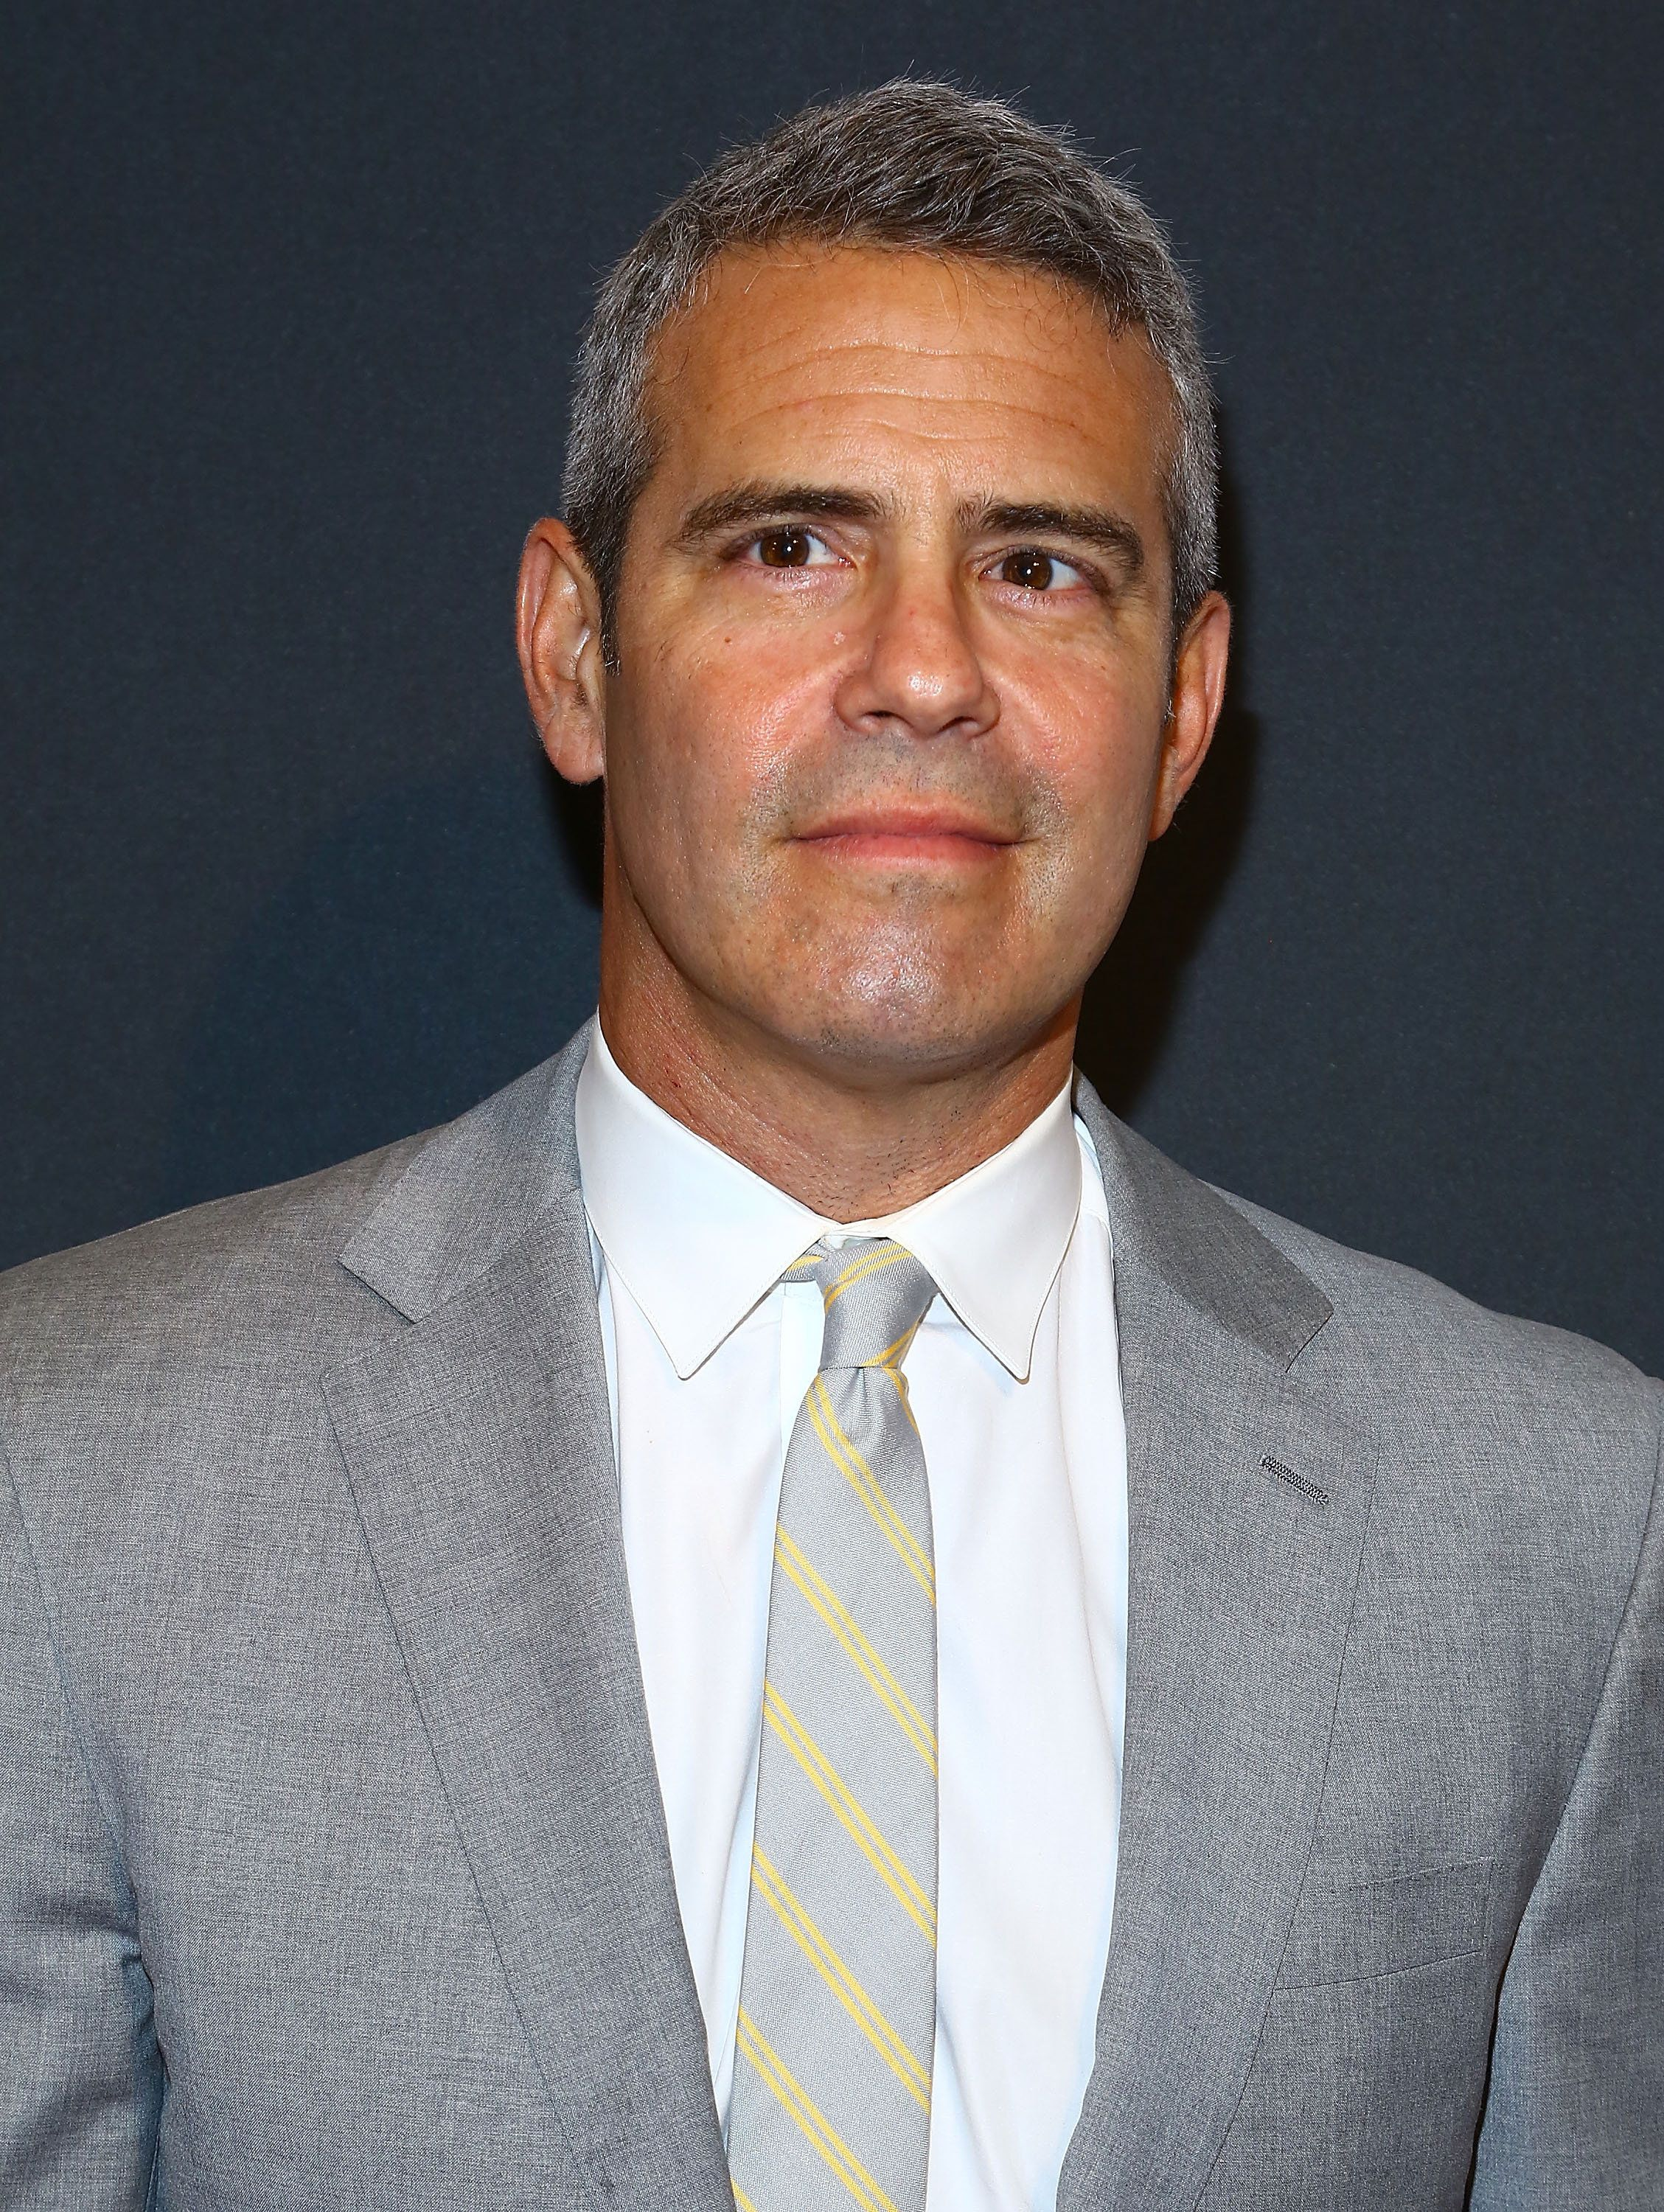 NEW YORK, NY - MAY 05:  TV personality  Andy Cohen attends the 2015 CLIO Awards at The Plaza Hotel on May 5, 2015 in New York City.  (Photo by Astrid Stawiarz/Getty Images)